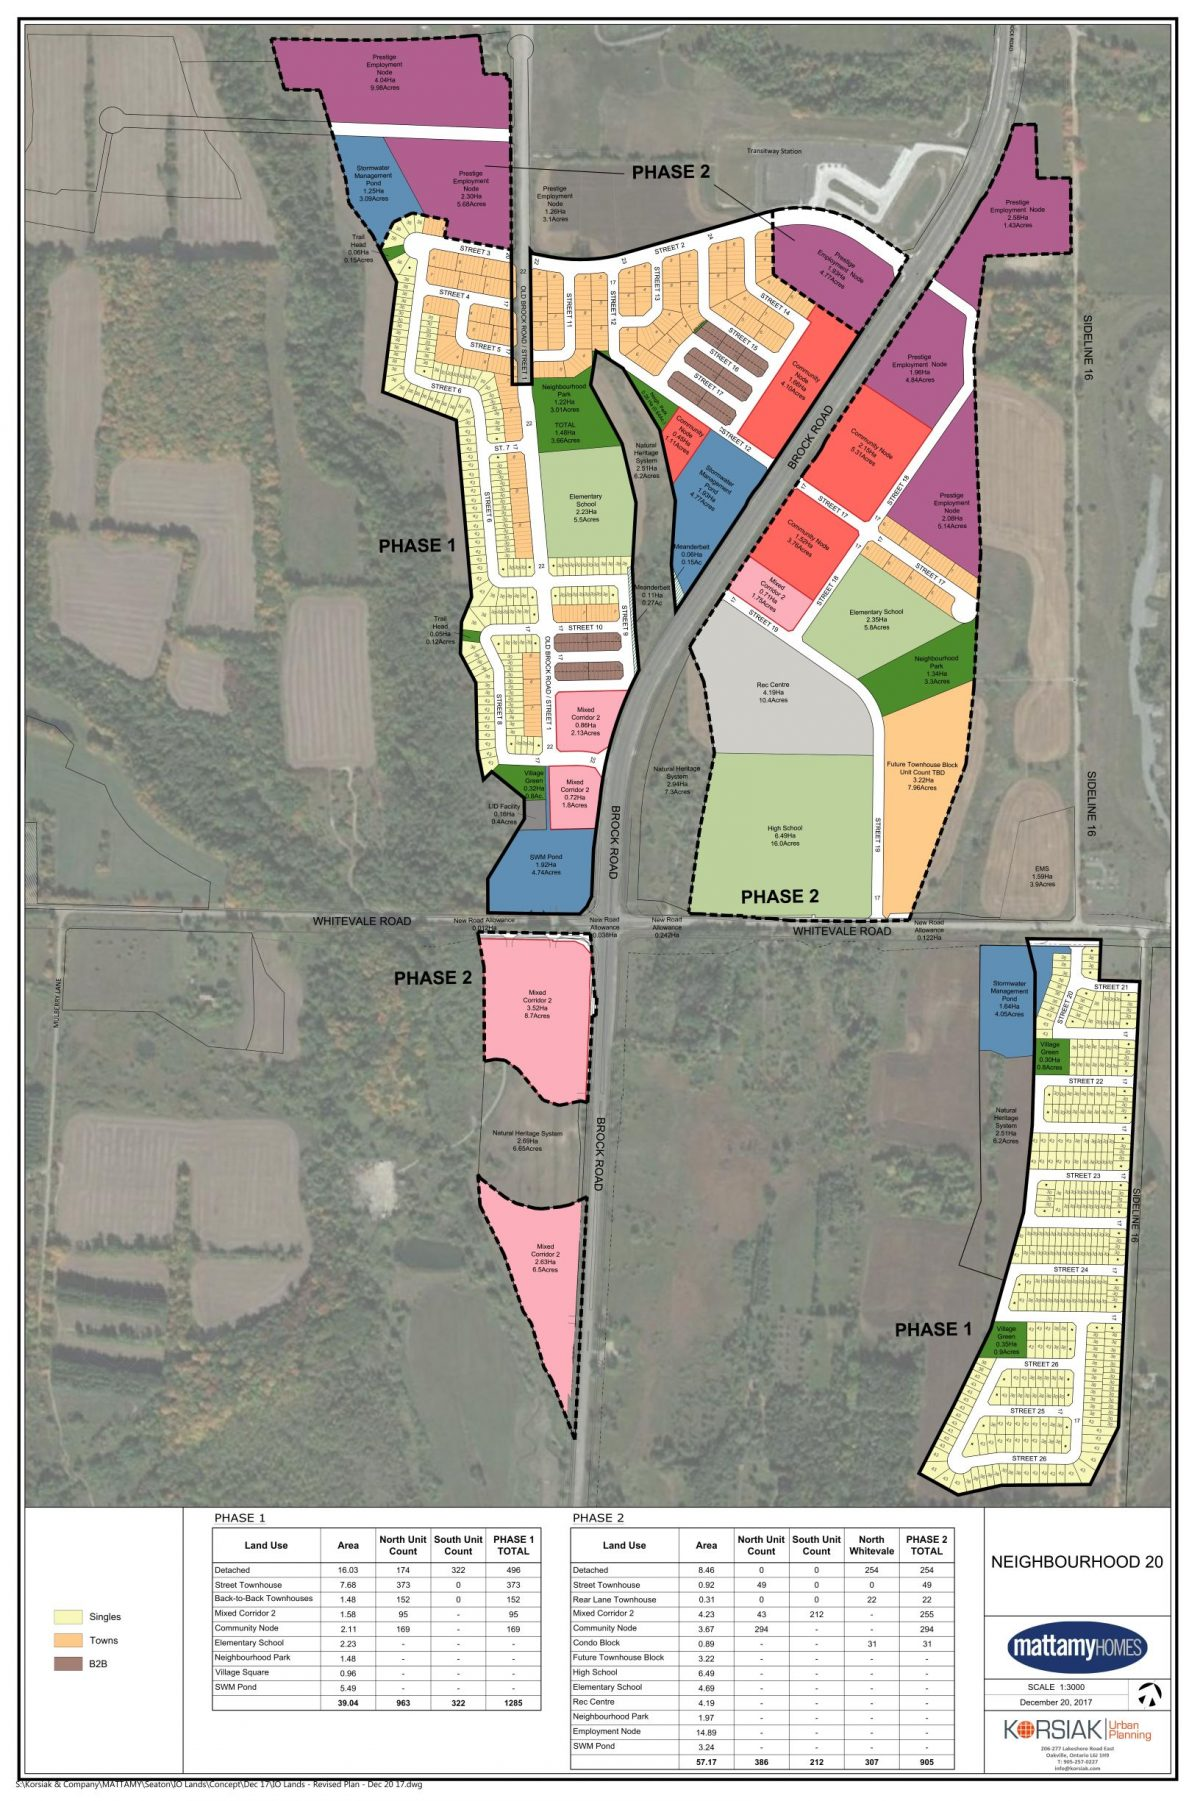 Korsiak Urban Planning - Pickering Portfolio - Seaton, Greenfield, Mixed Use Development - Pickering, Ontario